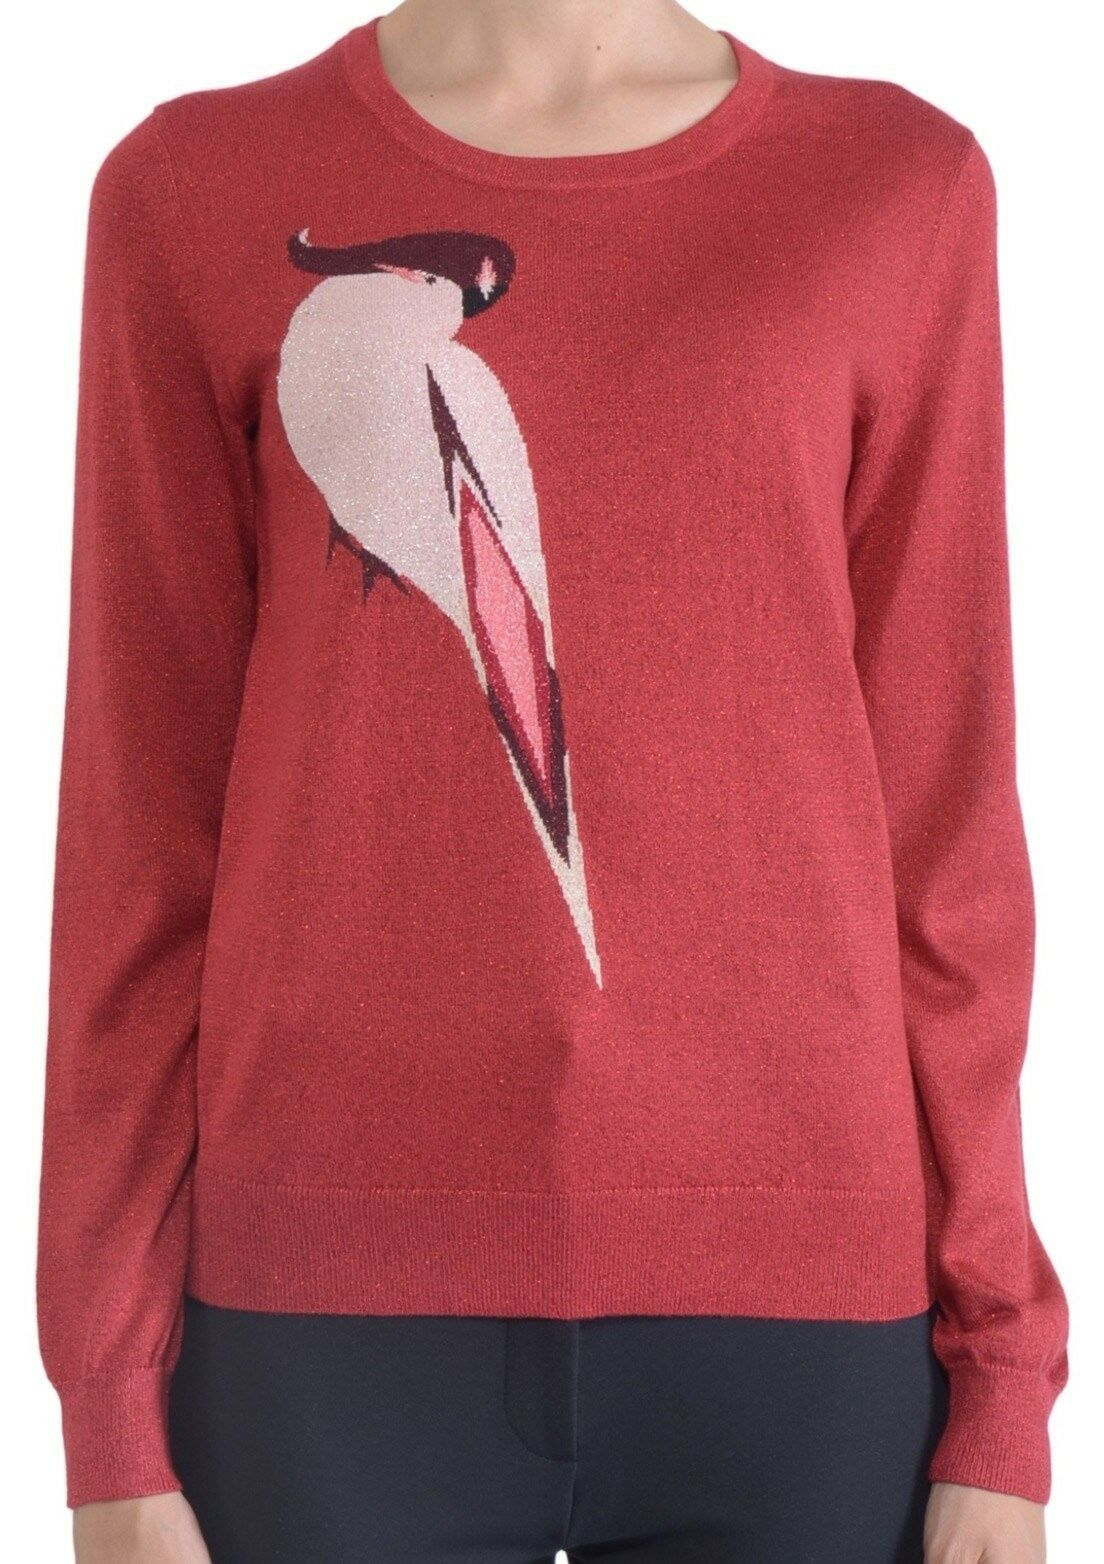 NWT  Marc by Marc Jacobs Parred Print Sweater Size M